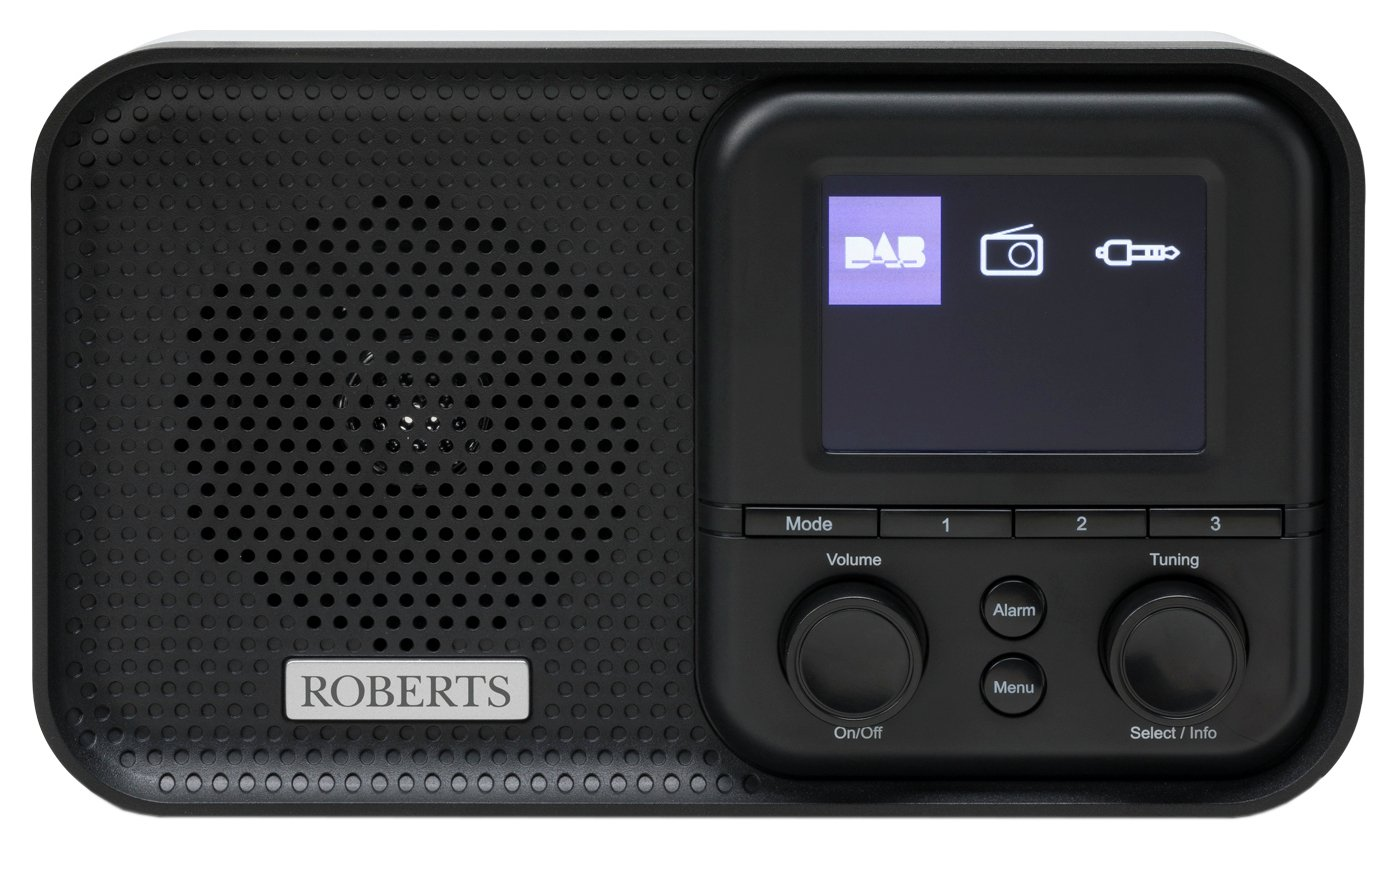 Roberts Play M5 DAB / DAB+ / FM Radio - Black